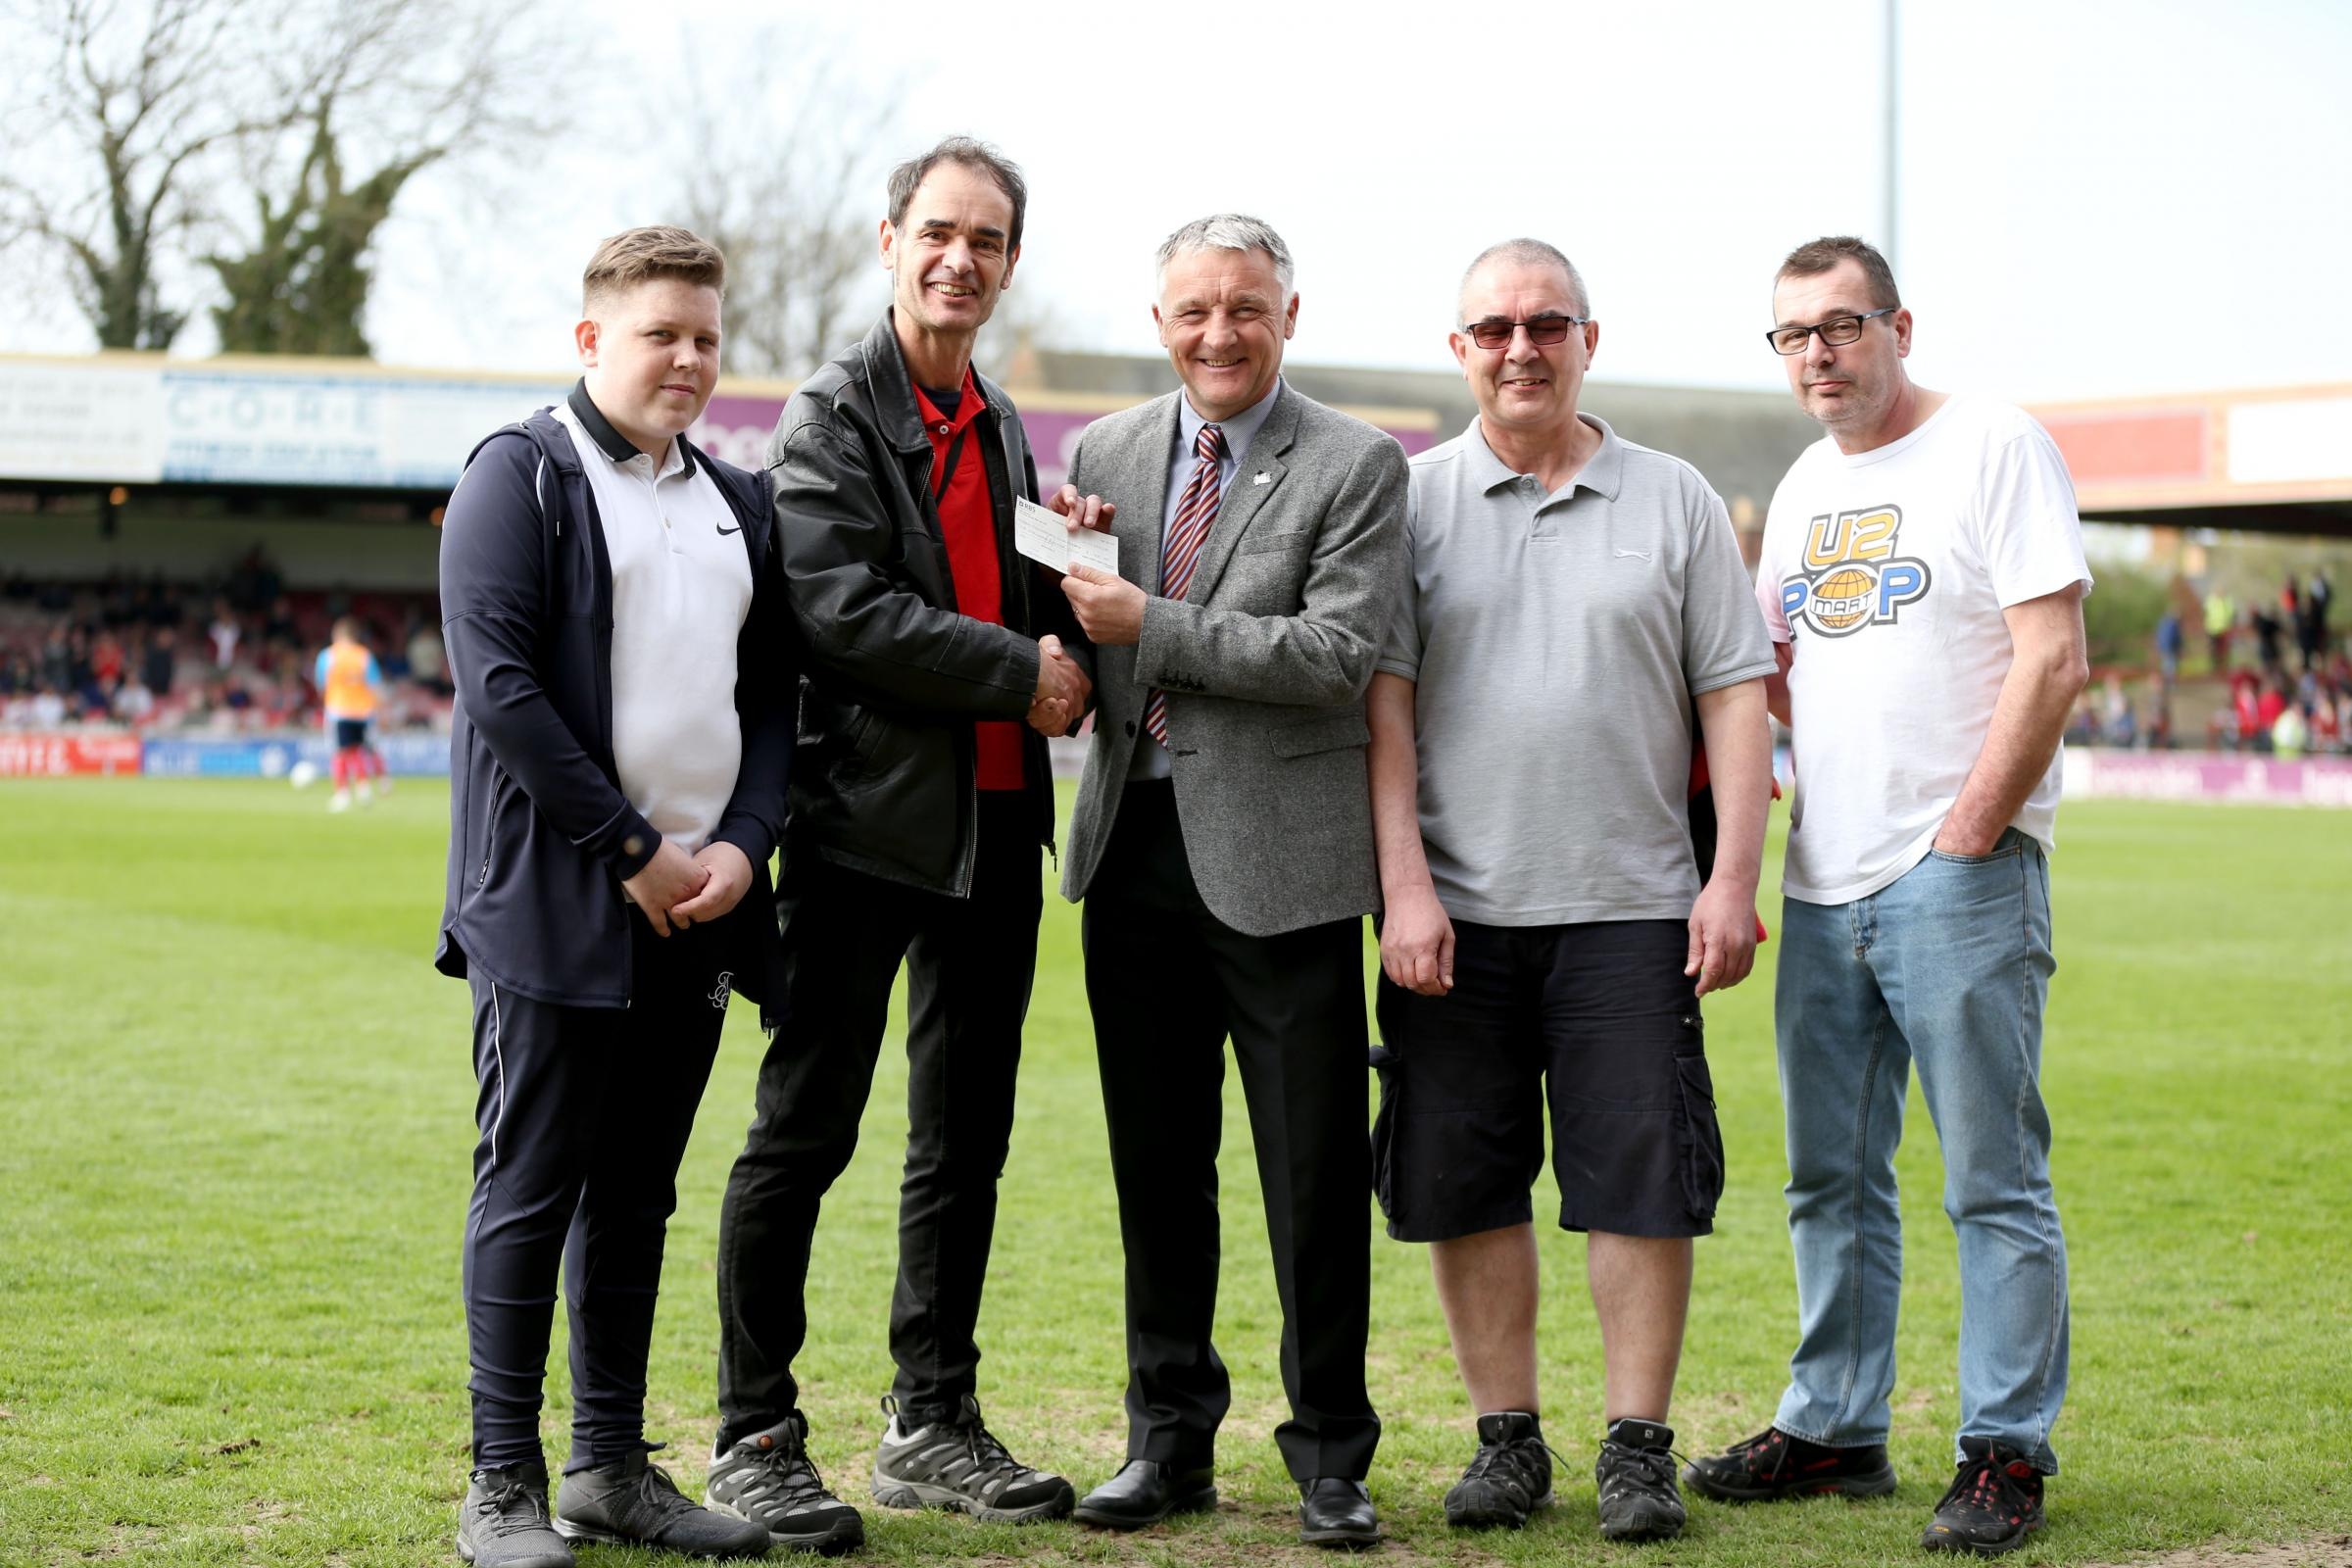 FAMILY TIES: The family of former York City keeper Joe Berridge hand over a £1,000 cheque for the club's academy to sporting director Dave Penney. Pictured from left-to-right are: Euan Berridge, Martin Berridge, Penney, Graham Berridge and Kevin Berridge